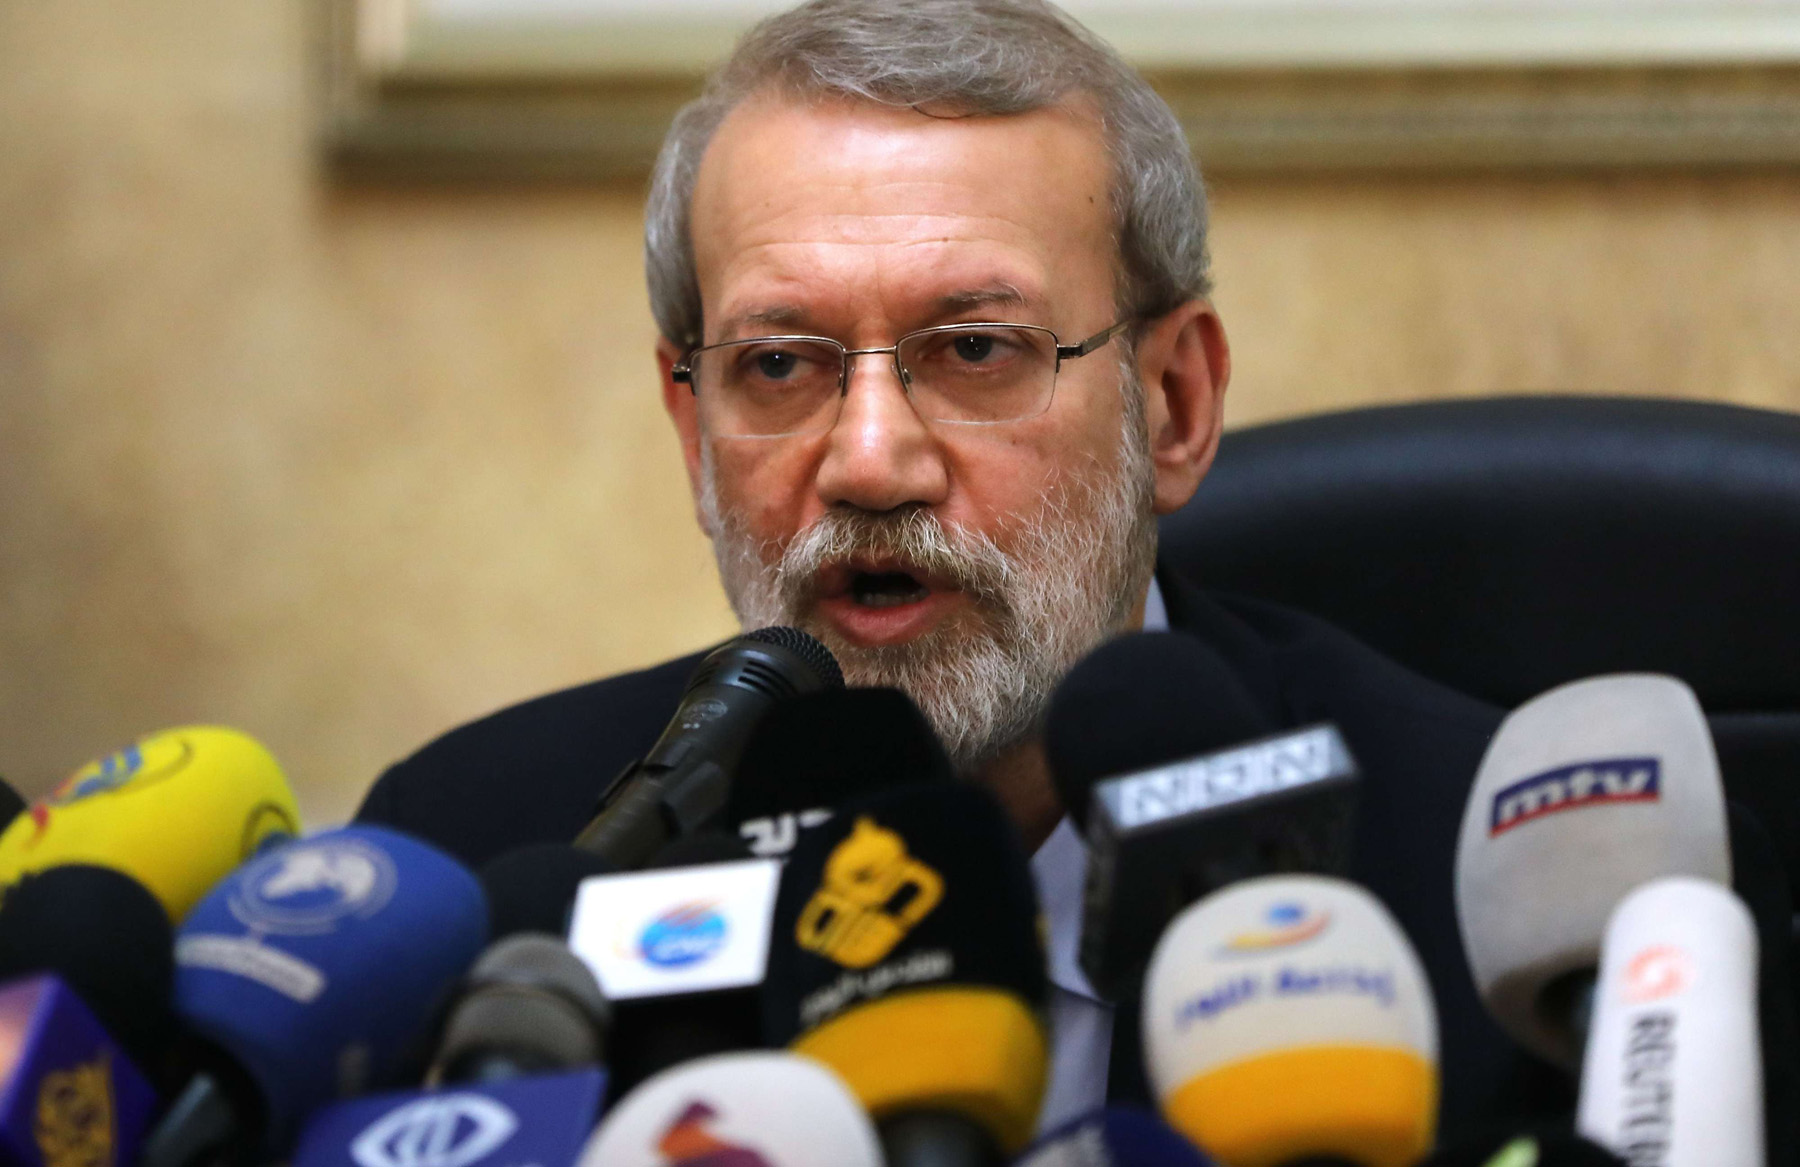 Iranian parliament Speaker Ali Larijani speaks during a news conference at the Iranian Embassy in Beirut, February 17. (AFP)